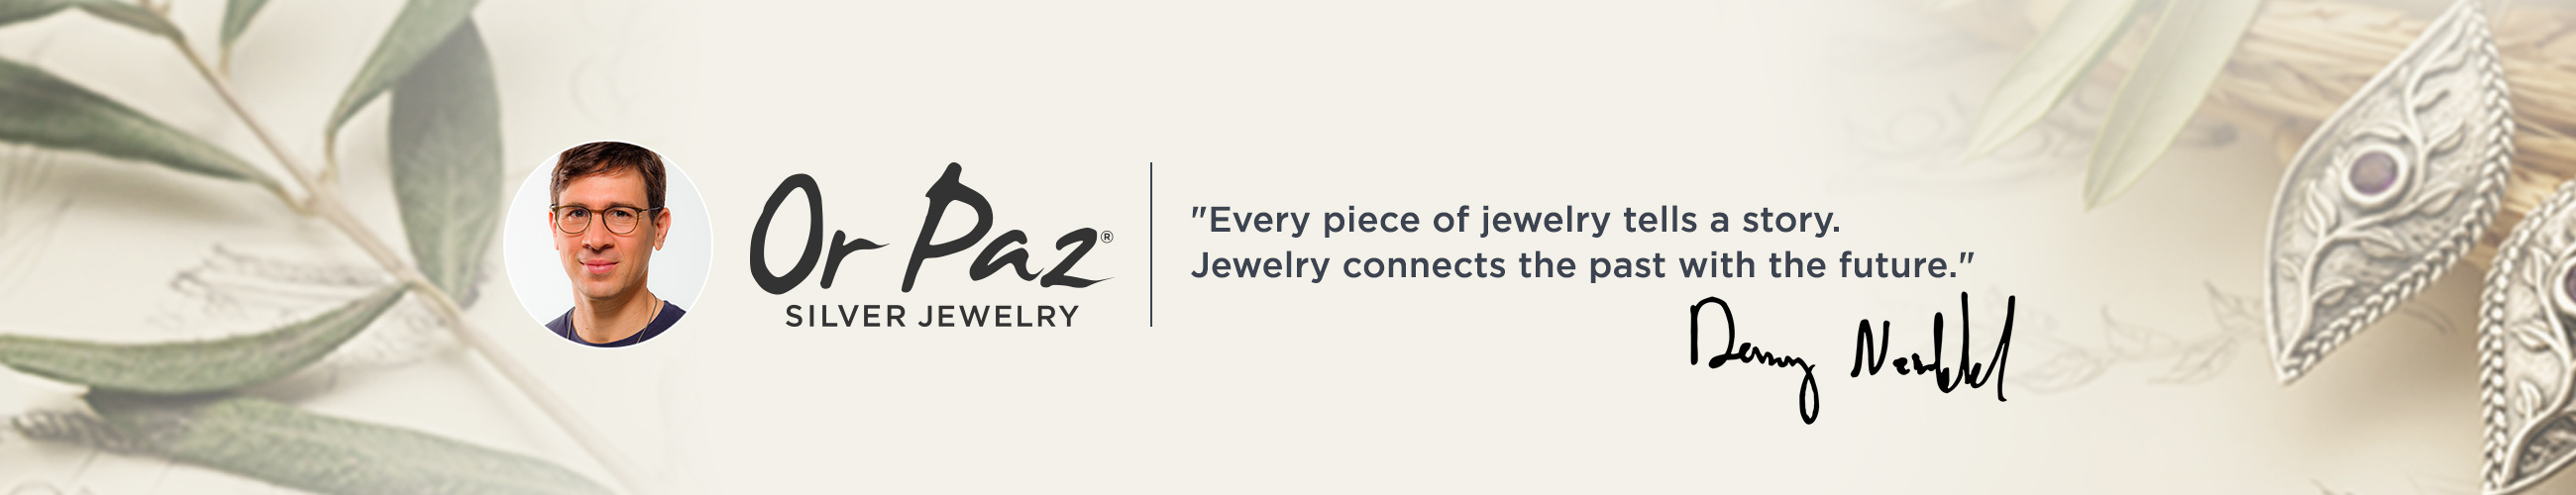 "Or Paz. ""Every piece of jewelry tells a story. Jewelry connects the past with the future."" —Danny Newfeld"